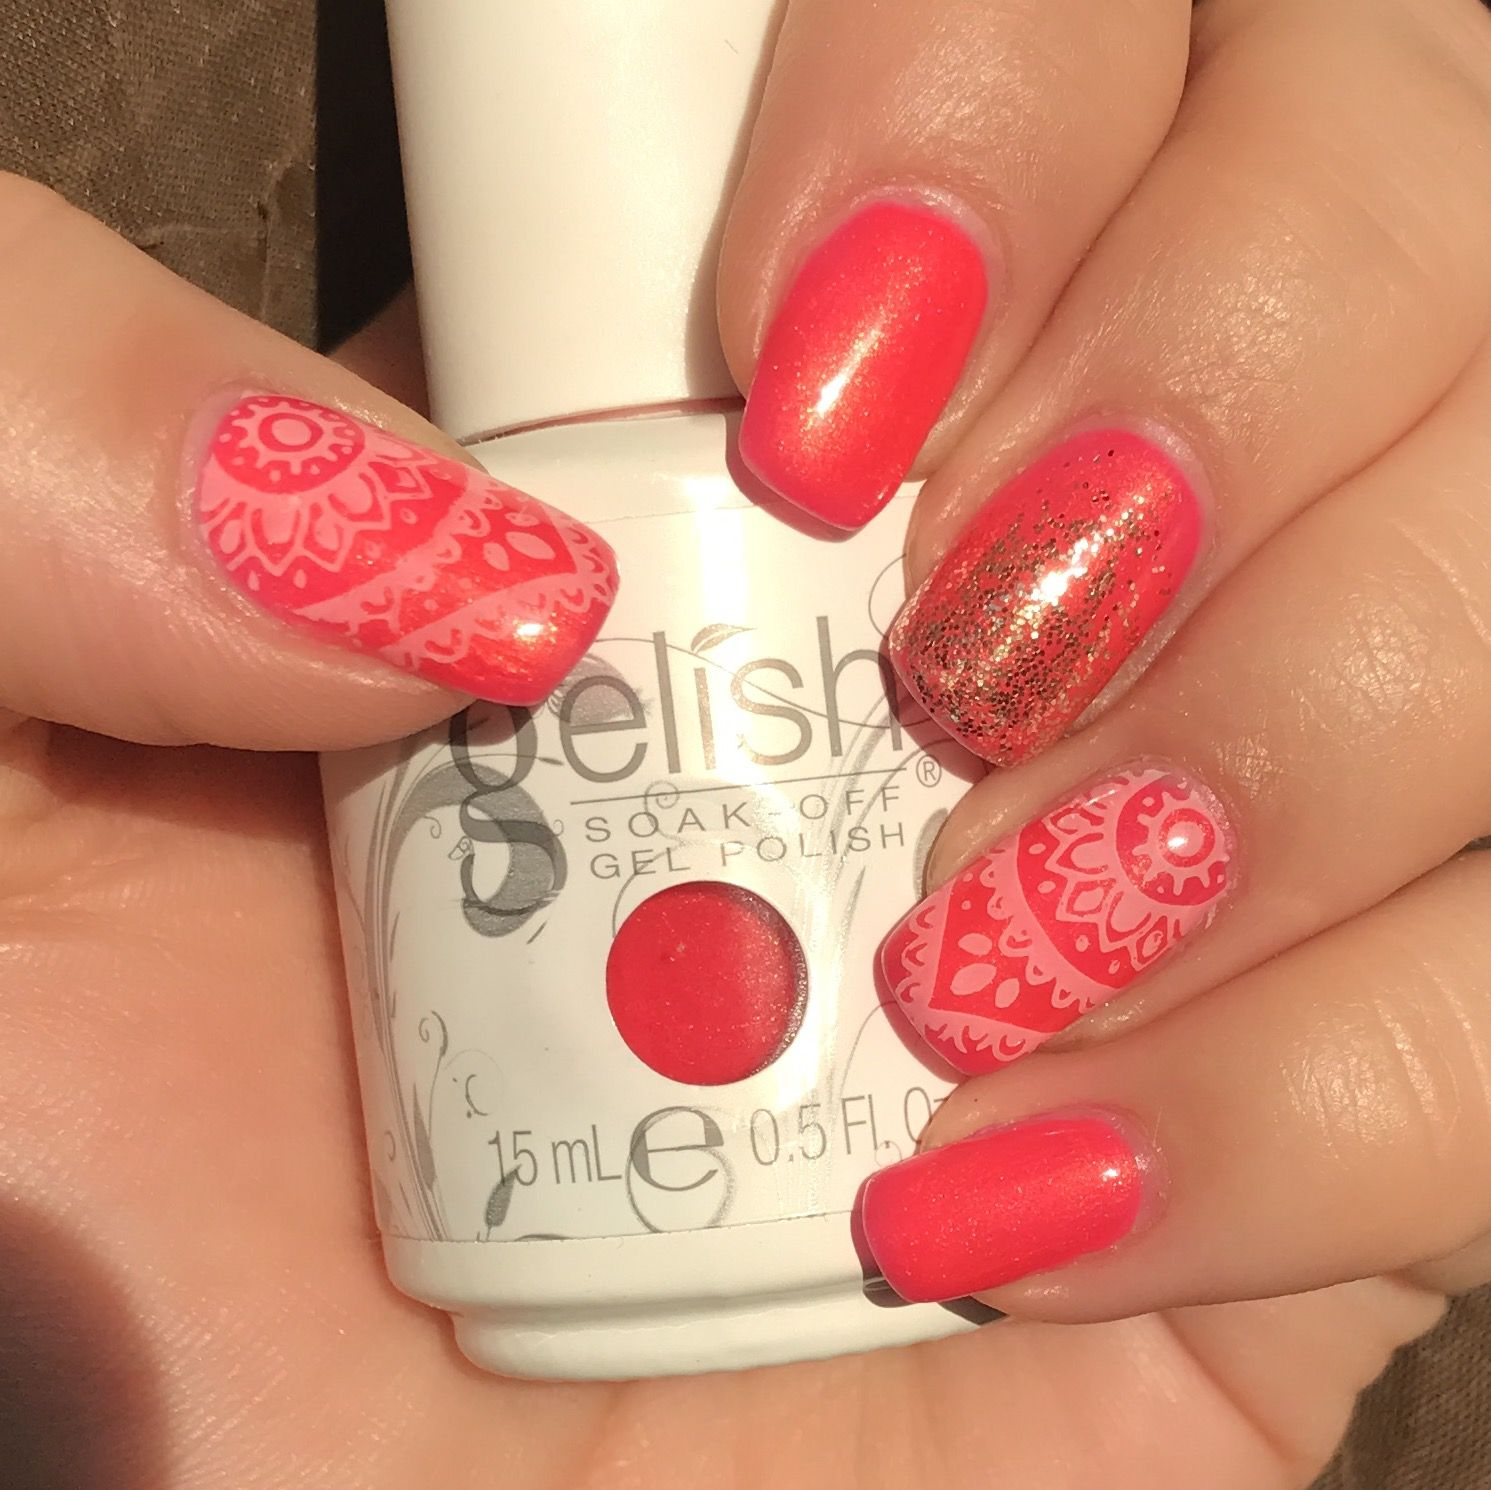 Gelish hip hot coral with young nails everyday art screen | Nail ...